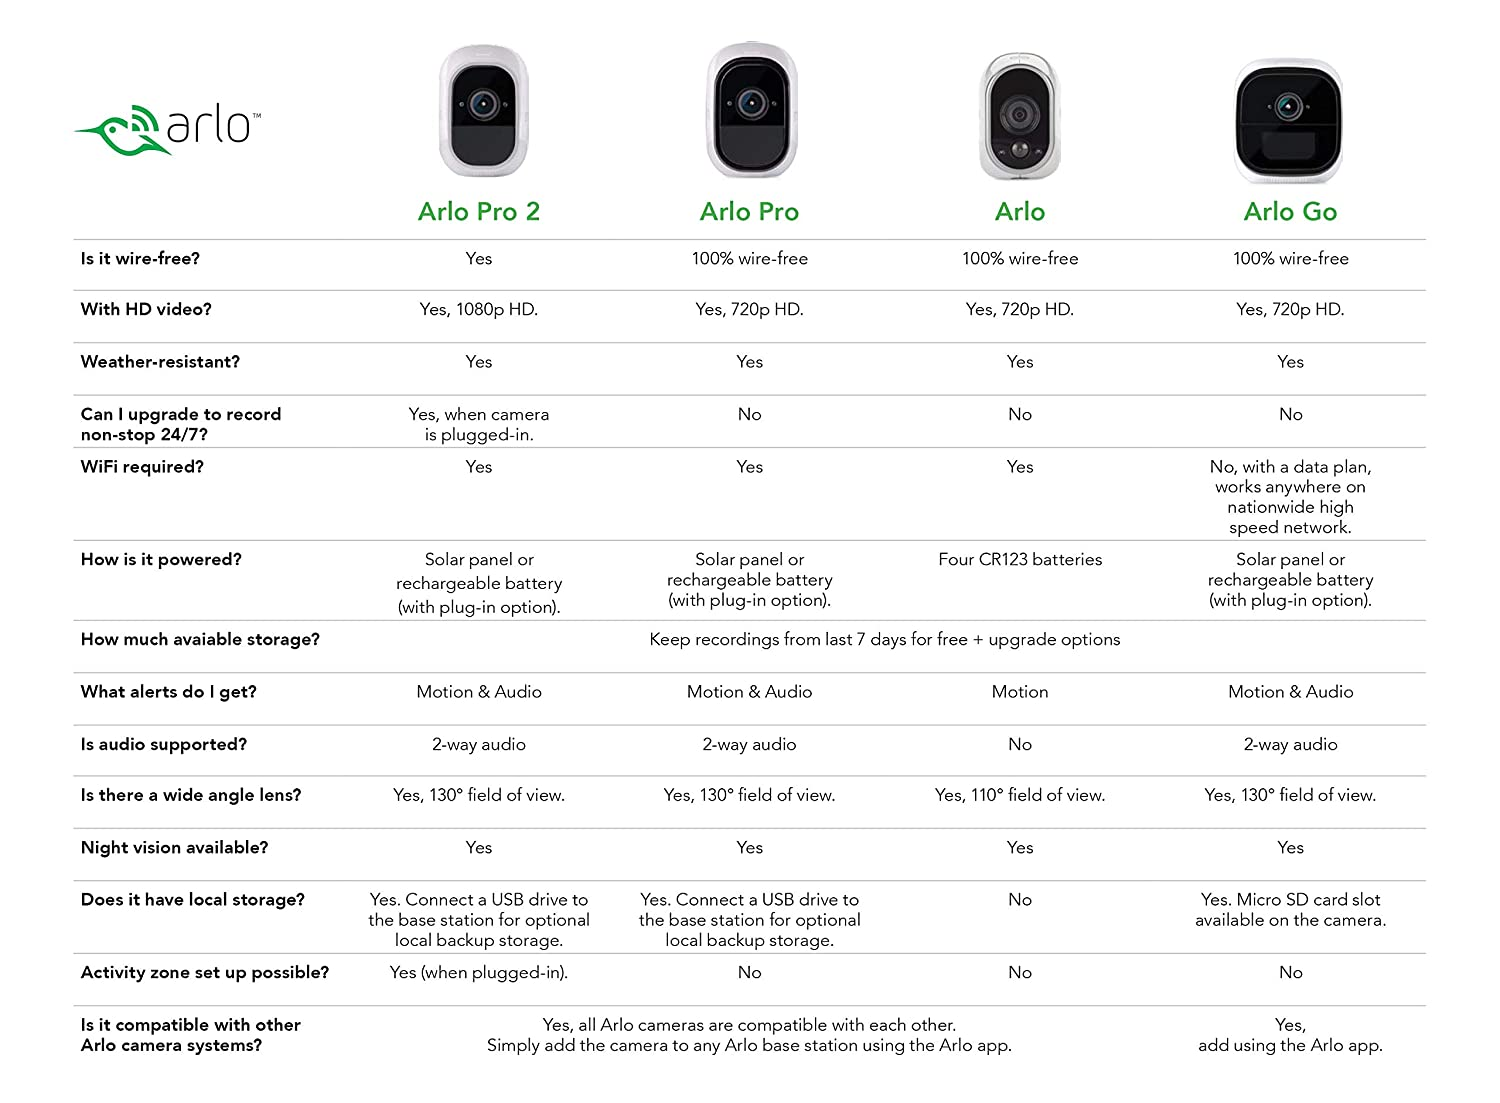 Arlo Pro Wireless Home Security Camera System With Wiring House For Sound Siren Rechargeable Night Vision Indoor Outdoor Hd Video 2 Way Audio